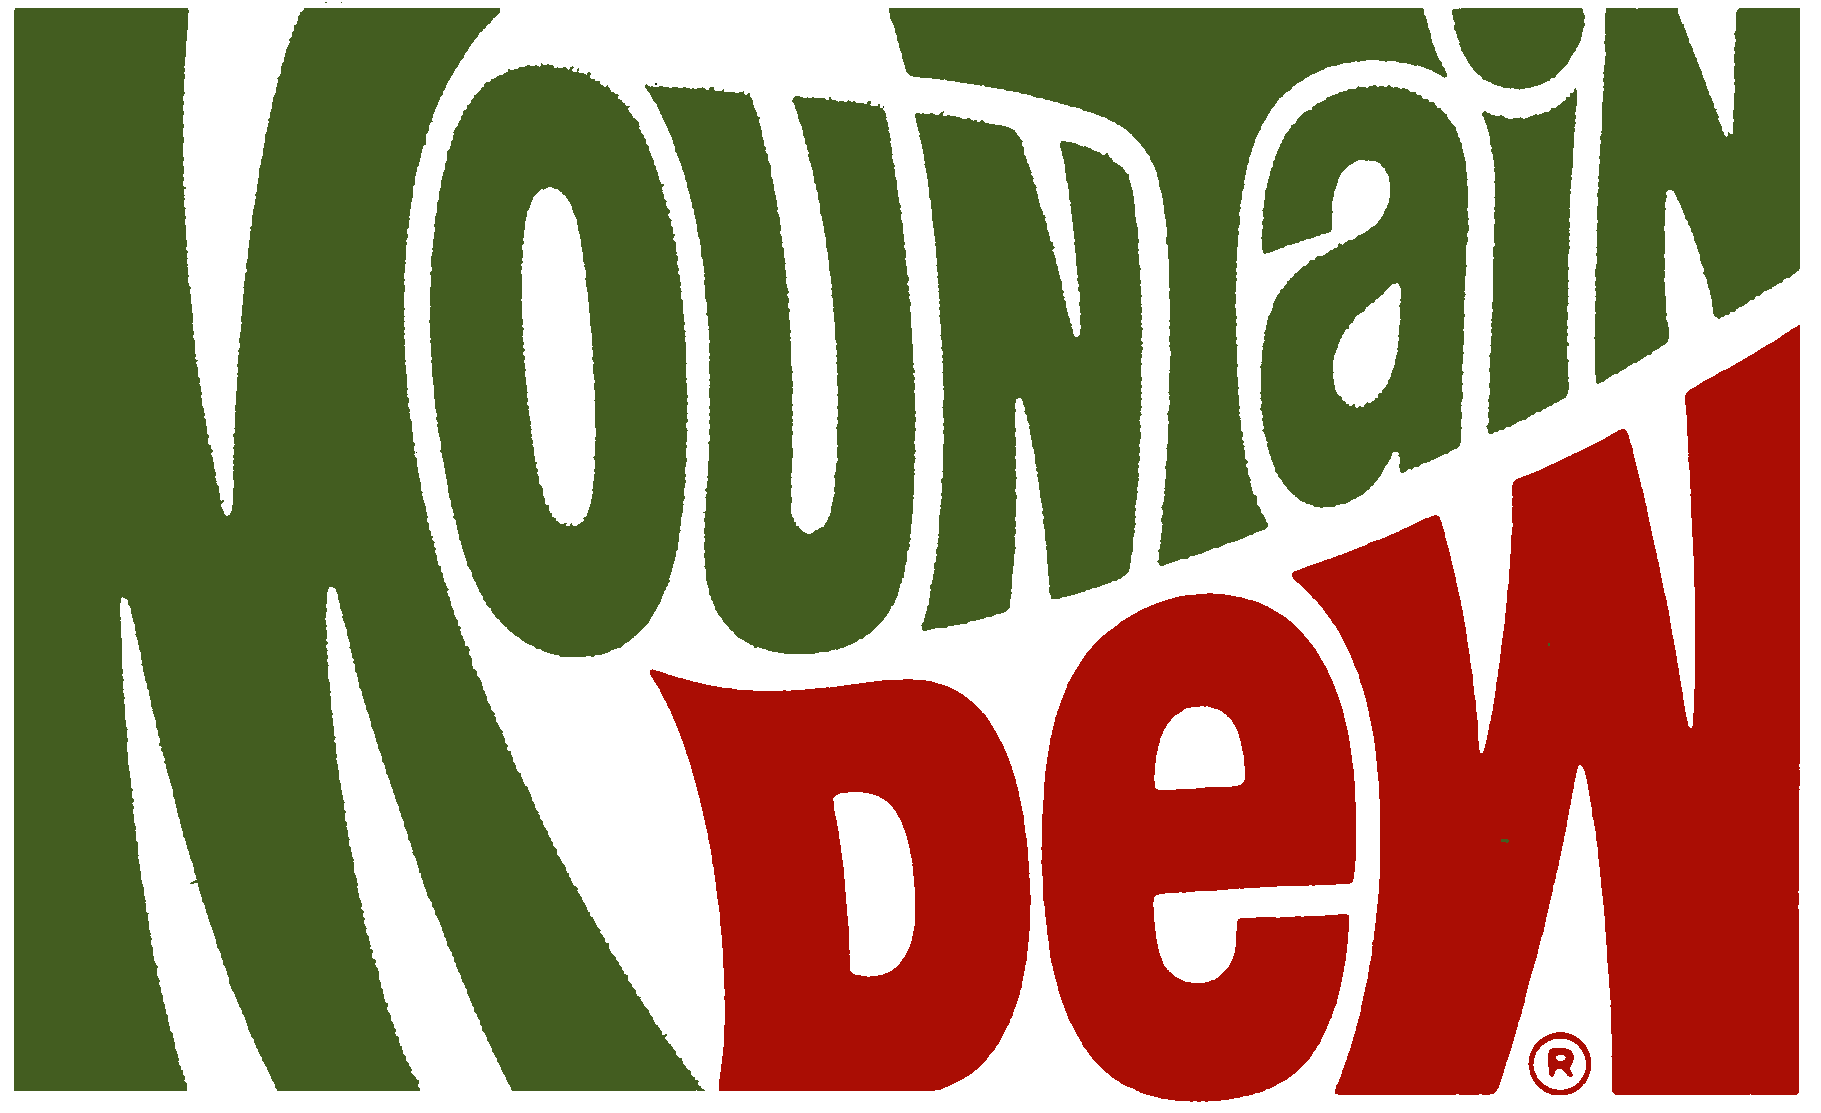 Mountain Dew Logo - Mountain Dew | Logopedia | FANDOM powered by Wikia